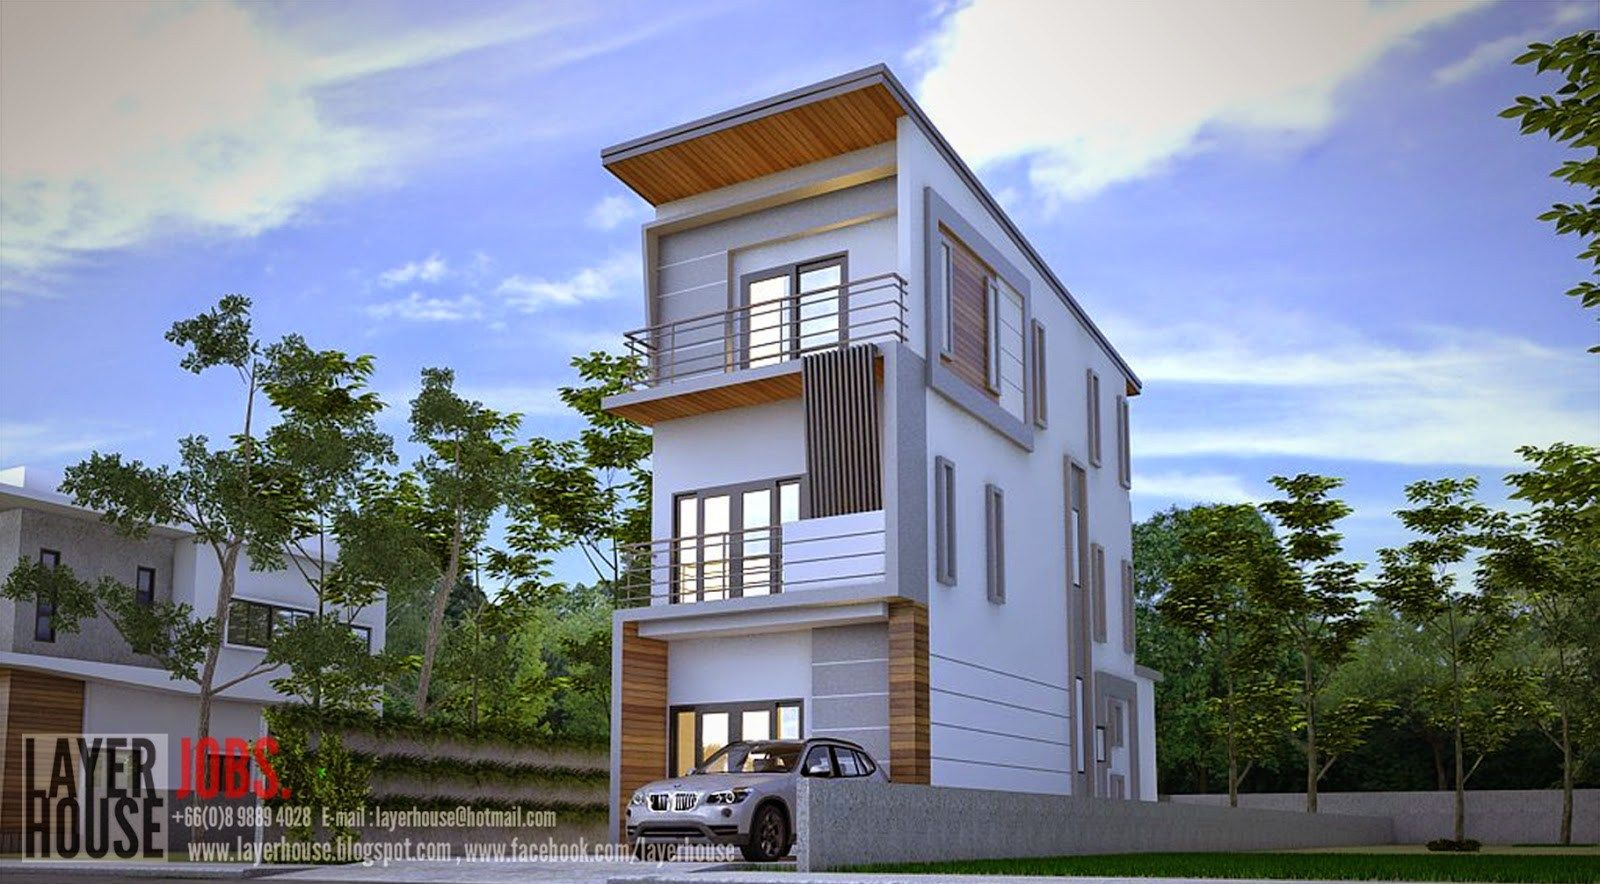 House Plans 4 8x11 5 With 5 Bedrooms Samhouseplans Model House Plan House Plans Narrow House Designs